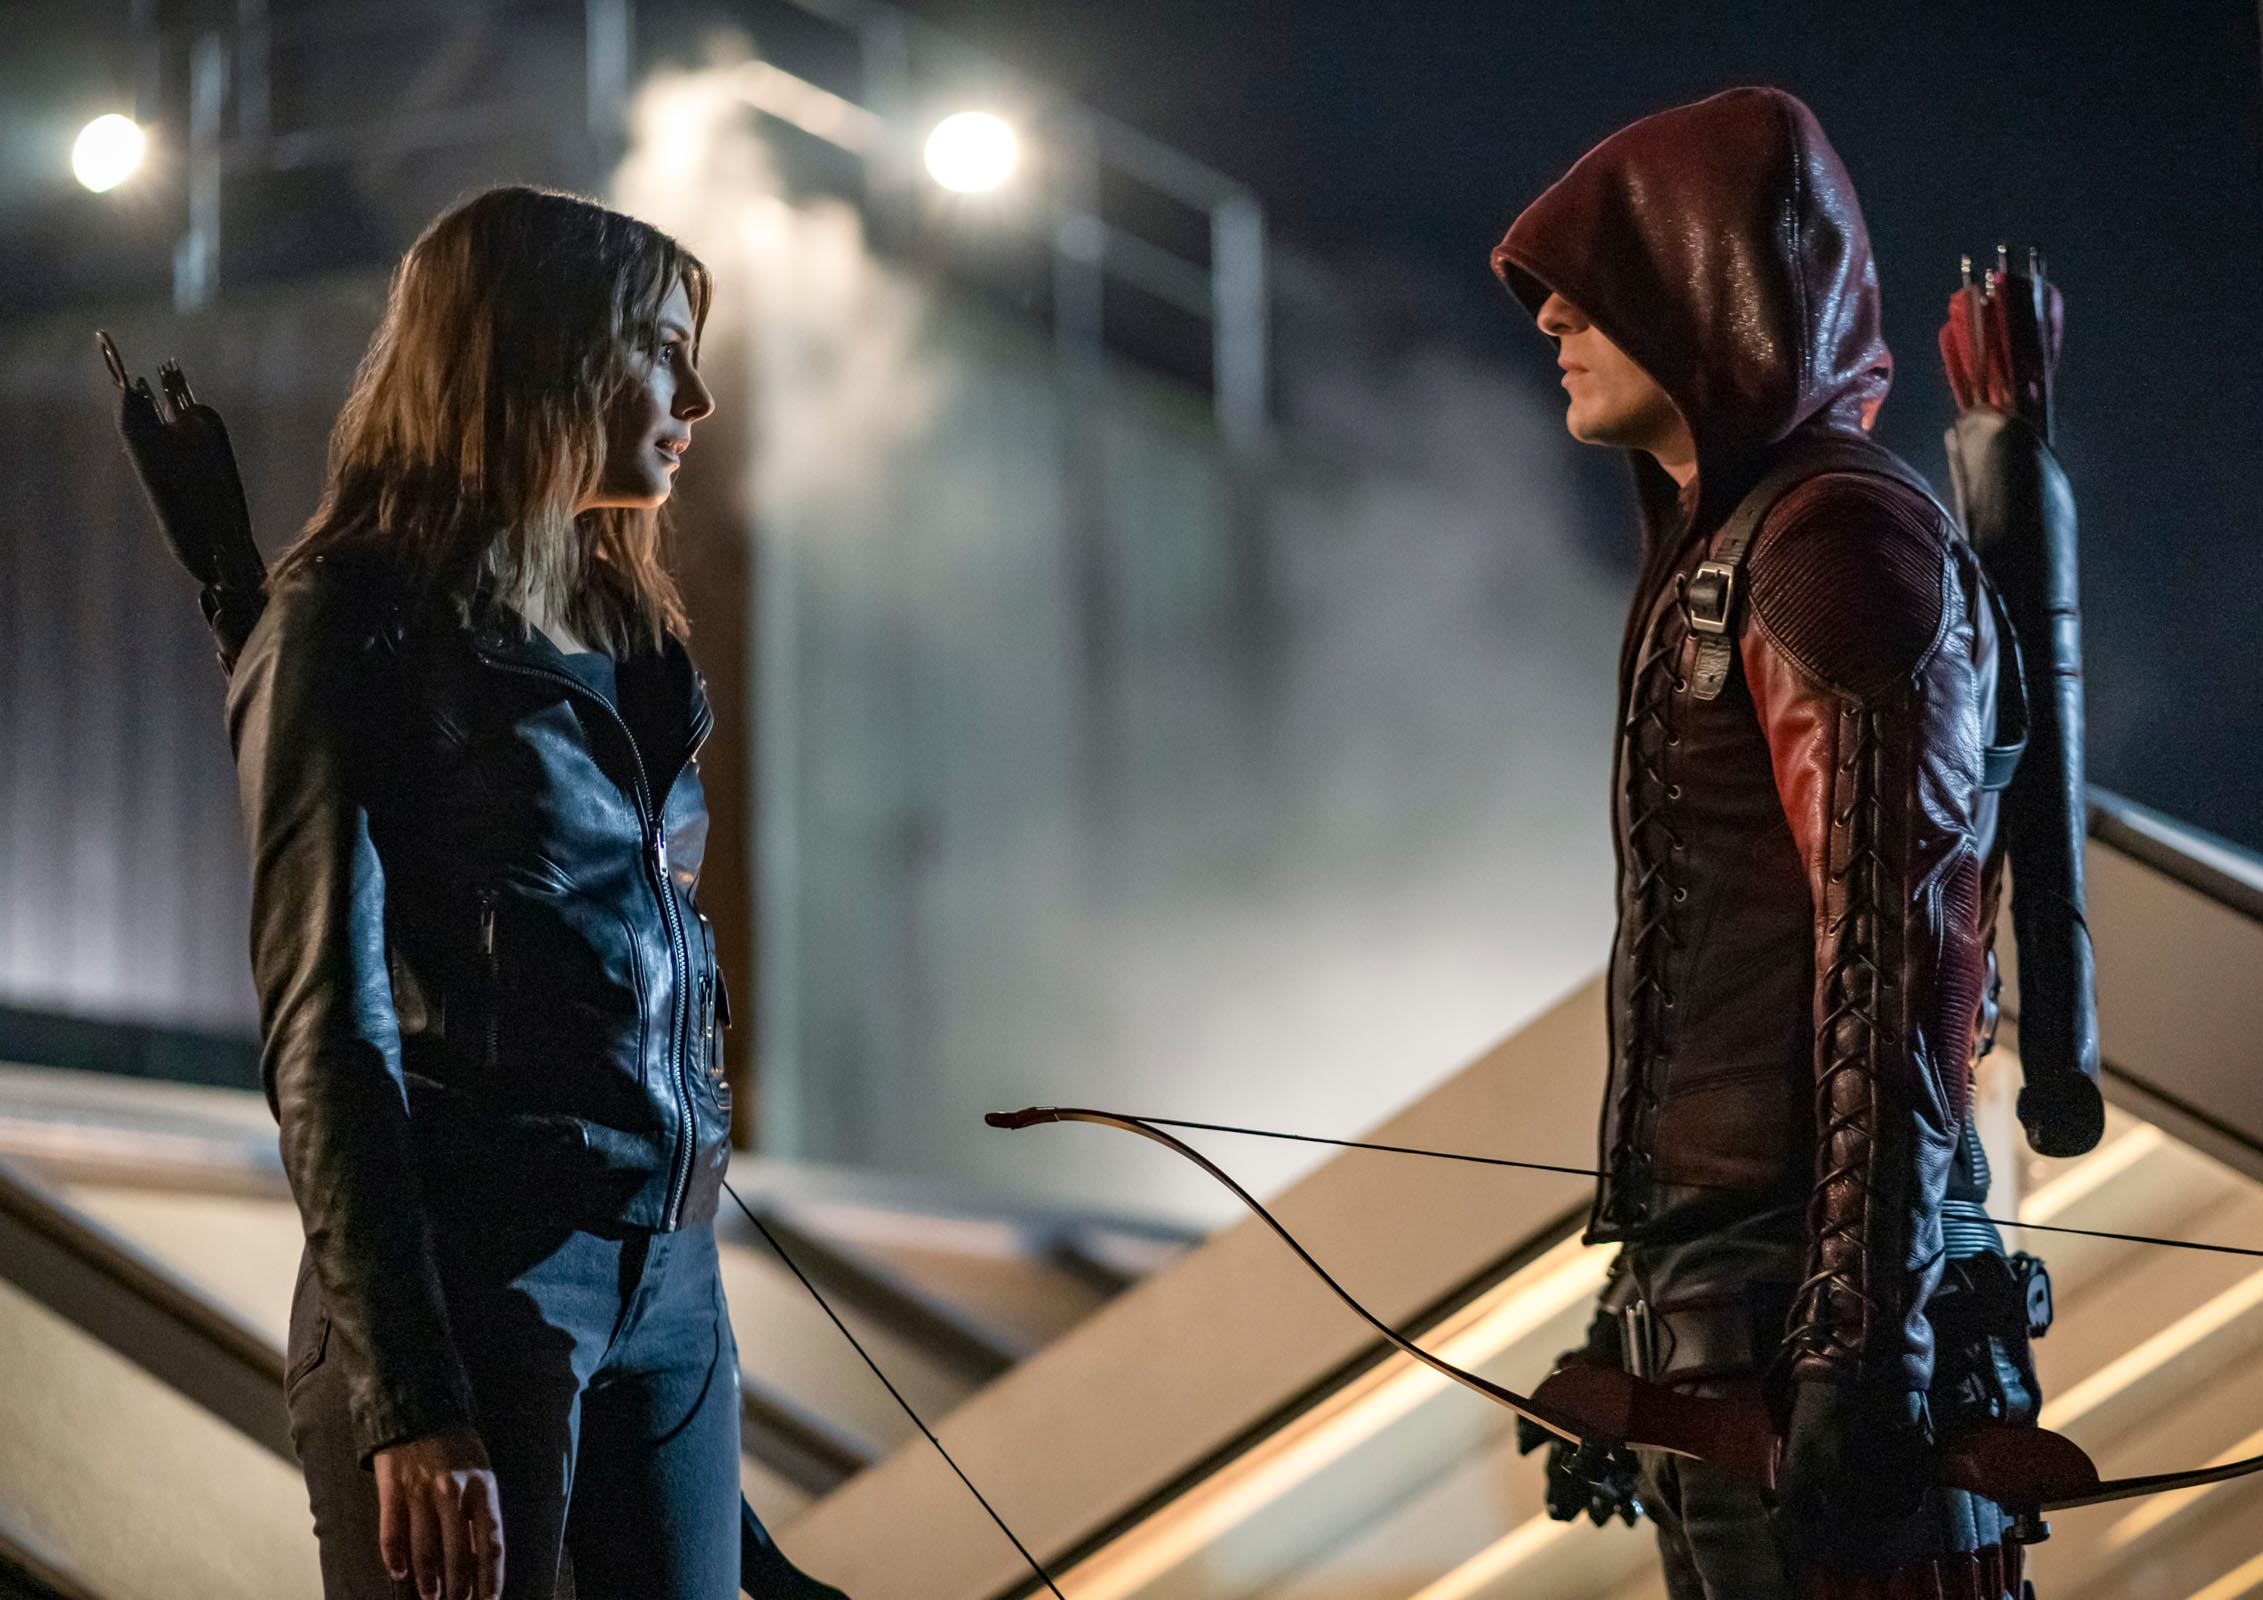 Arrow series finale photos reveal Felicity's return and major post-Crisis changes 16